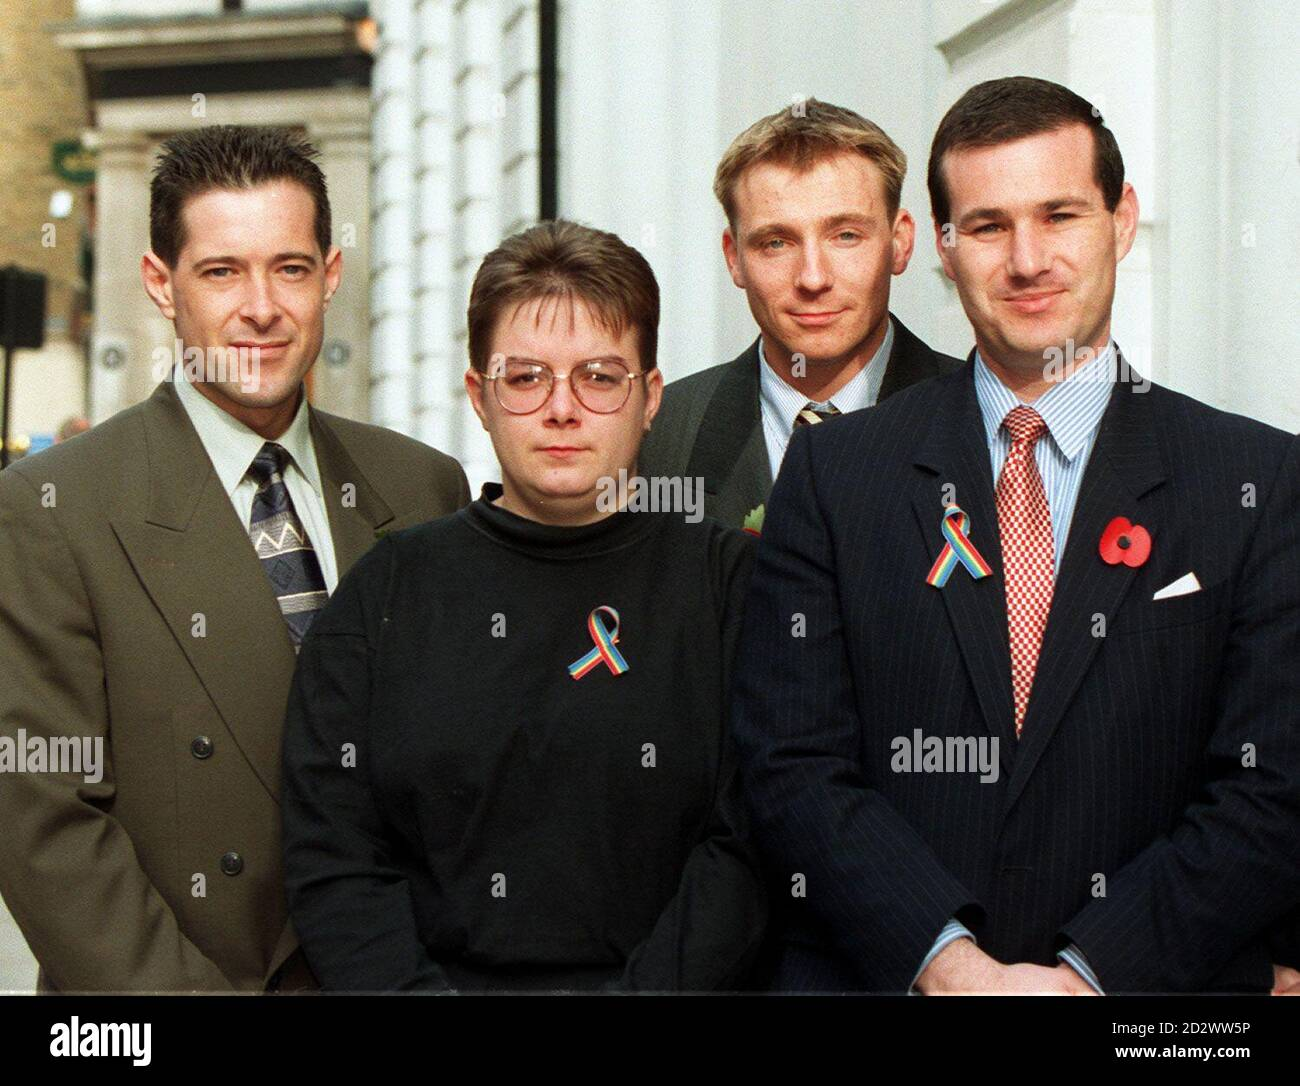 Sacked members of the Armed Forces (l-r) Graeme Grady, Jeanette Smith, John Beckett and Duncan Lustig-Prean stand outside the Law Society after hearing the Appeal Court ruling that the ban on homosexuals serving in the military was lawful. The three judges ruled the Ministry of Defence's automatic bar on gays - said to be necessary to maintain the morale and efficiency of the fighting forces - was neither irrational nor unawful. 27/9/99  who will hear if the European Court of Human Rights supports their claim that the investigations into their homosexuality and subsequent sackings violated the Stock Photo